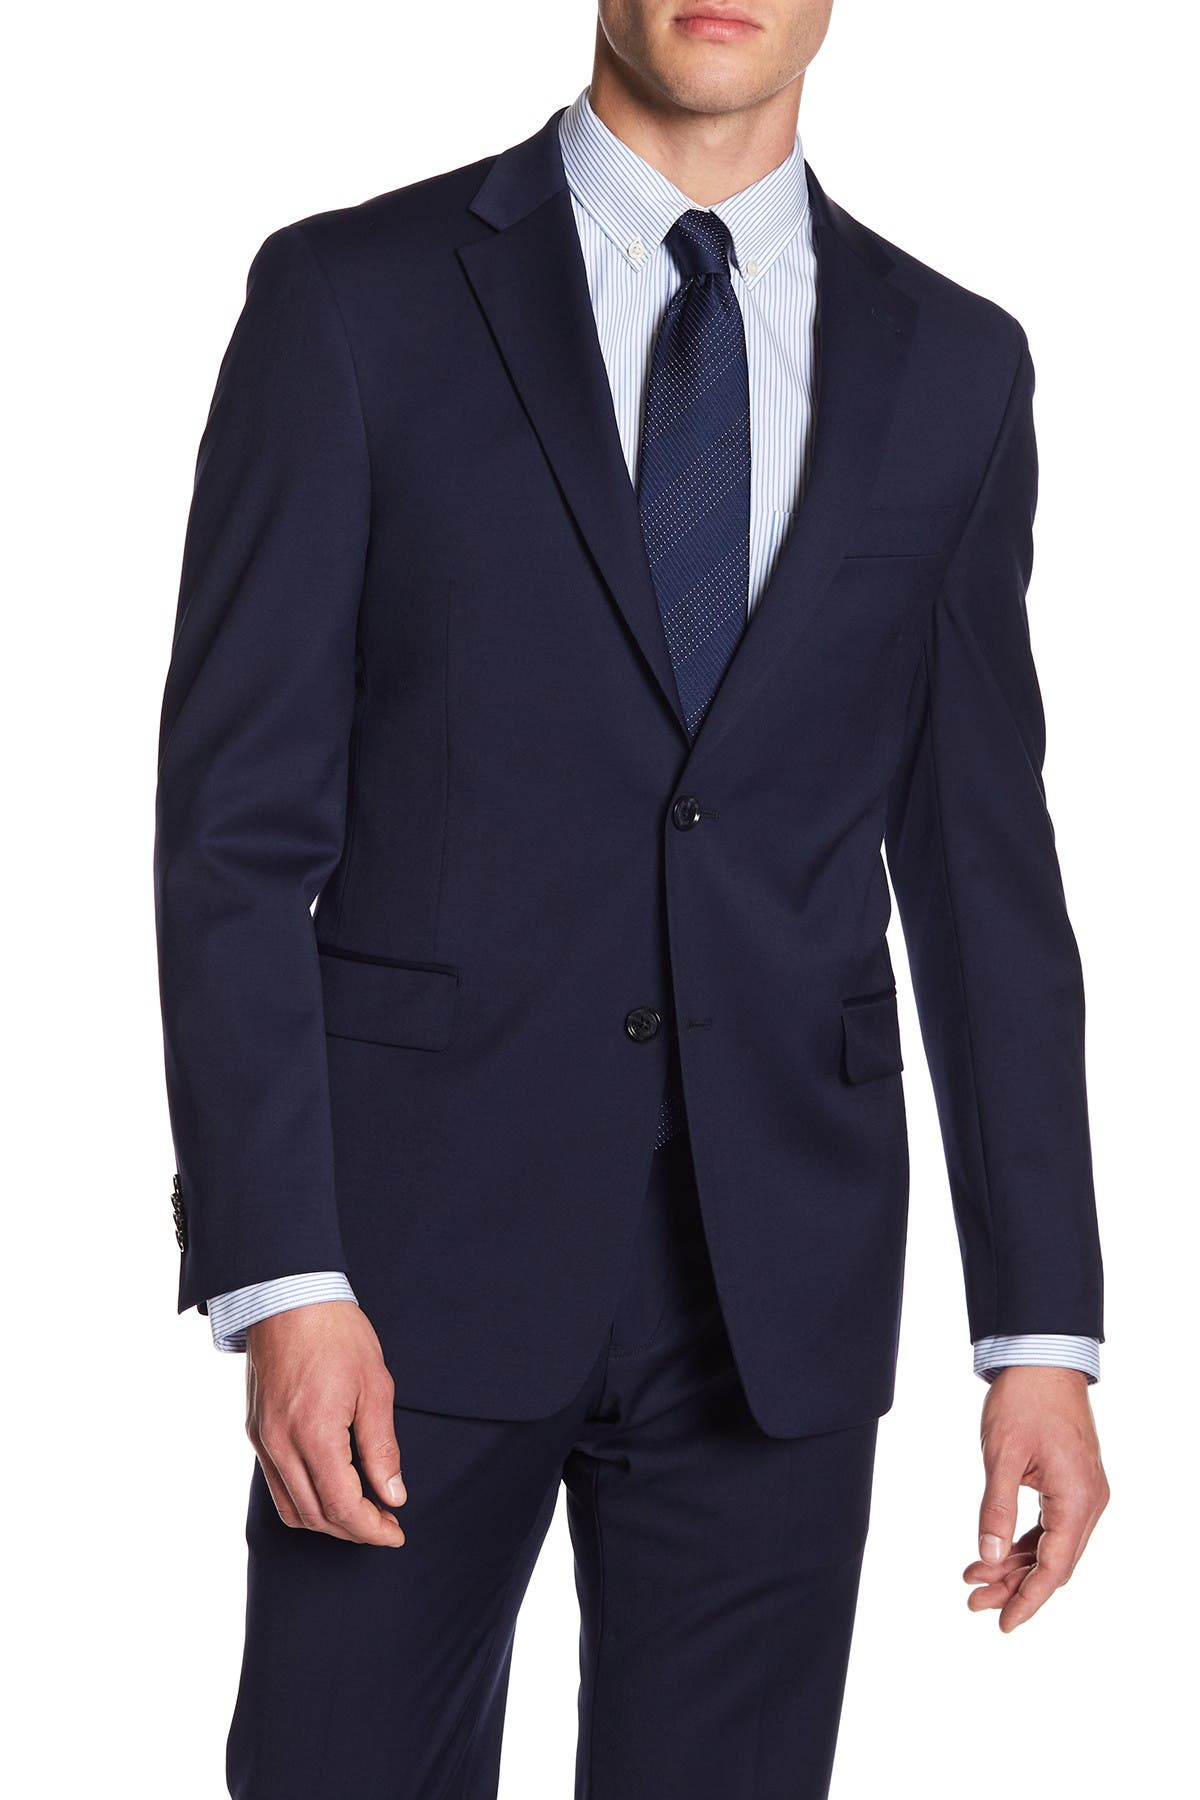 Image of Tommy Hilfiger Adams Two Button Notch Lapel Modern Fit TH Flex Performance Suit Separates Jacket